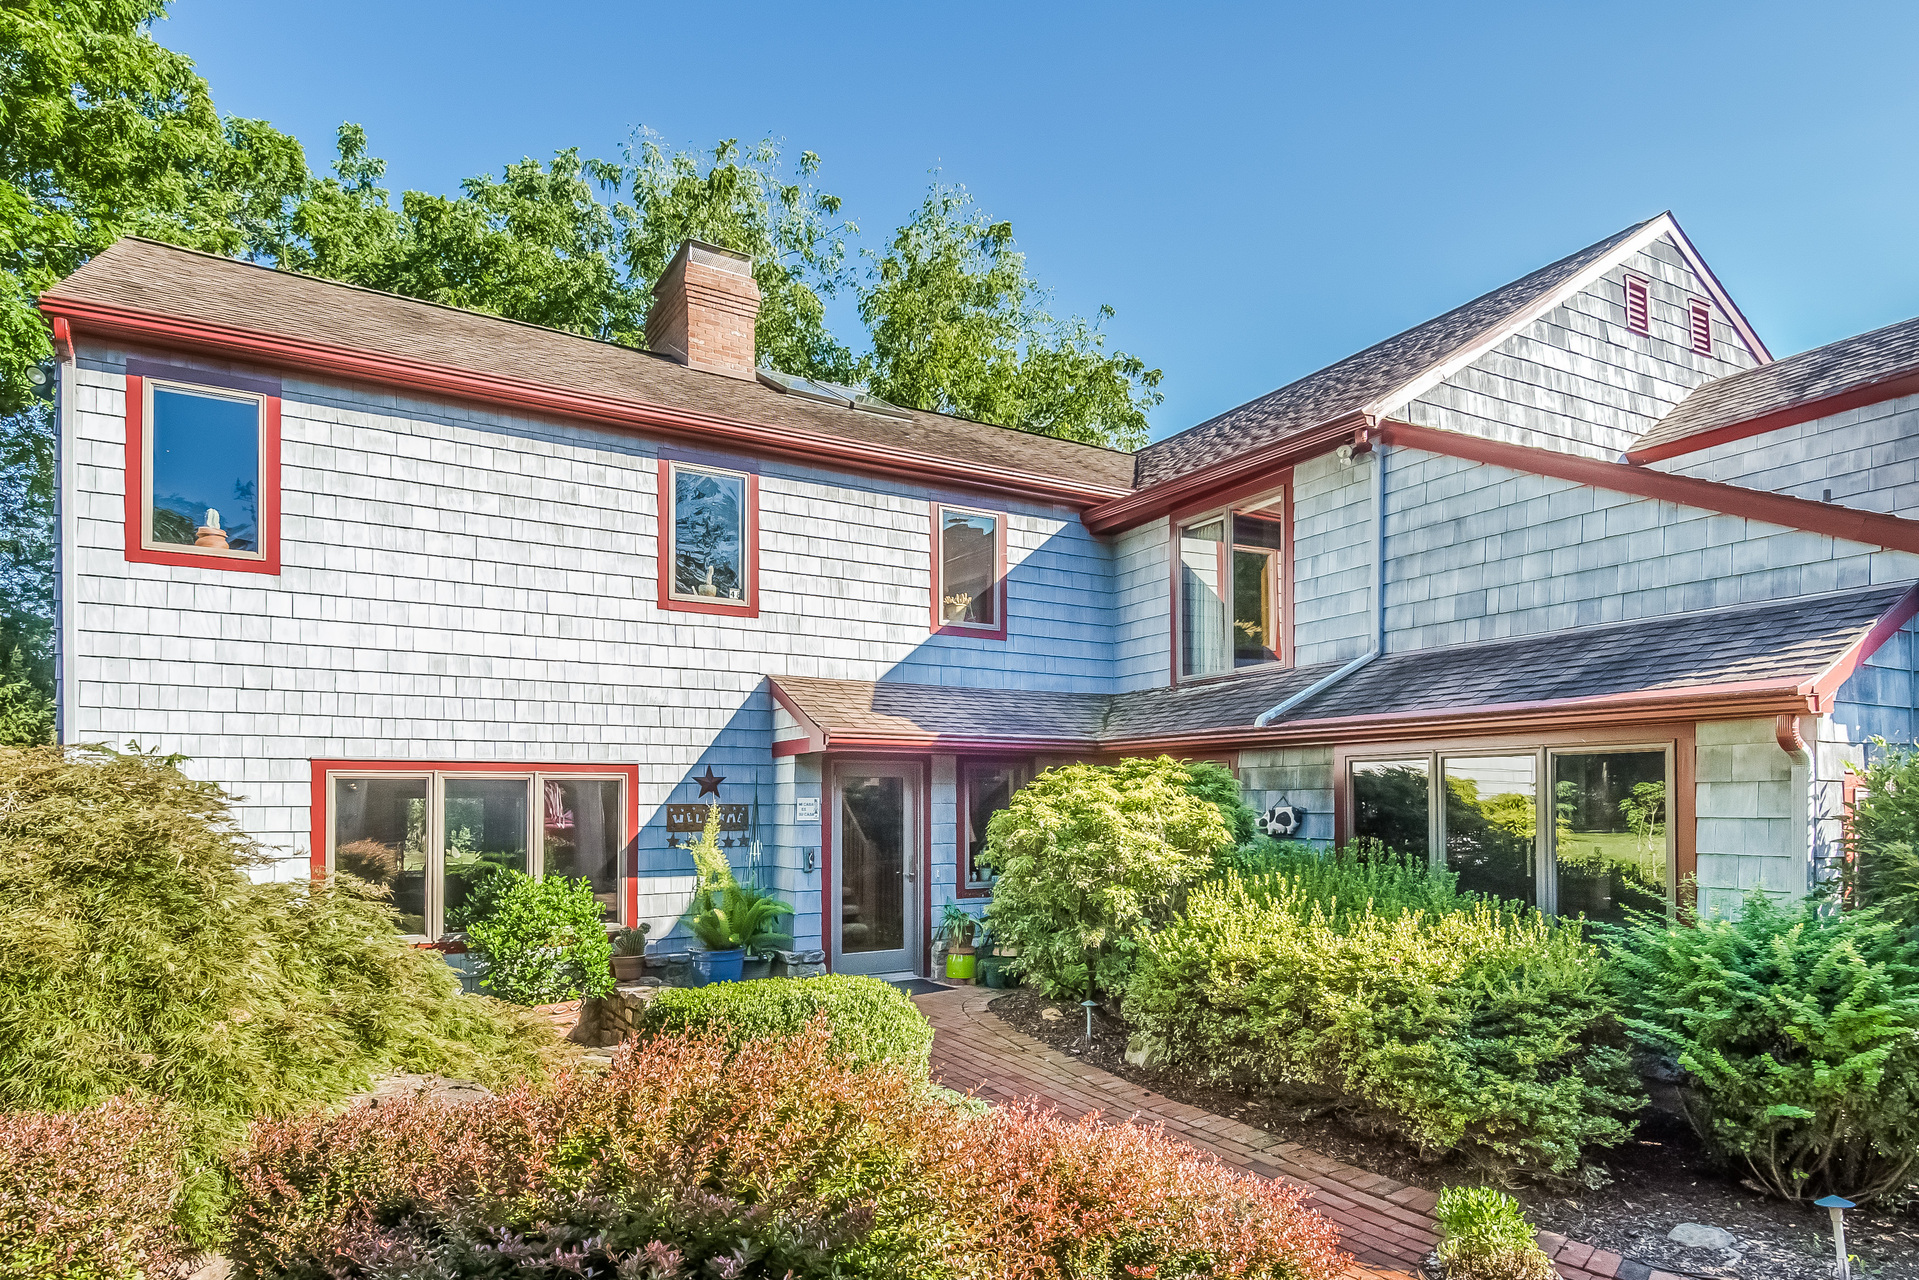 Property For Sale at A Glorious Converted Barn - Readington Township